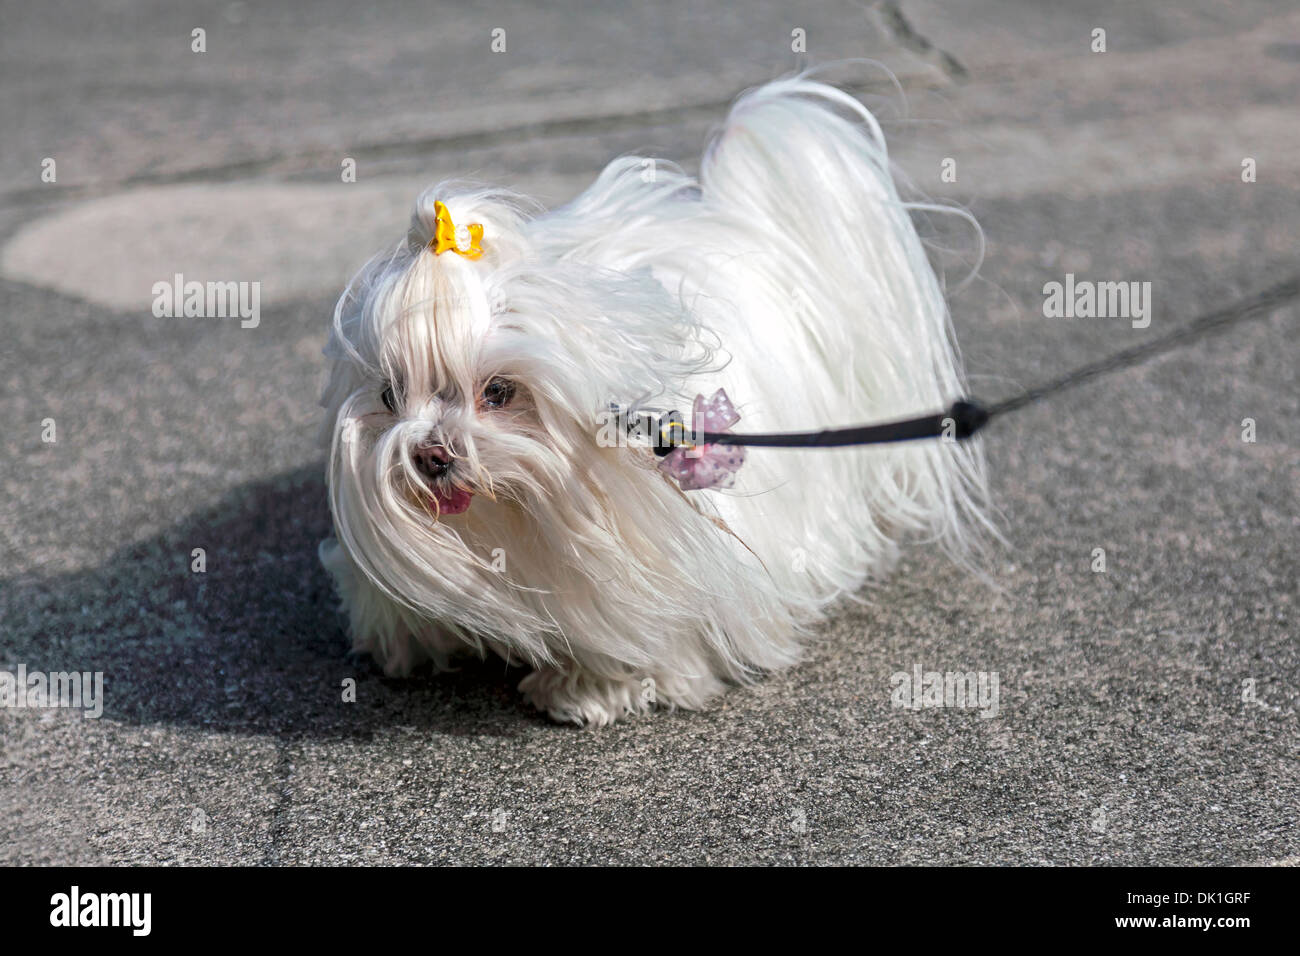 silky dog white. small maltese dog with long, silky white hair, yellow and pink polka dotted bows, out for an afternoon walk in ft. lauderdale.